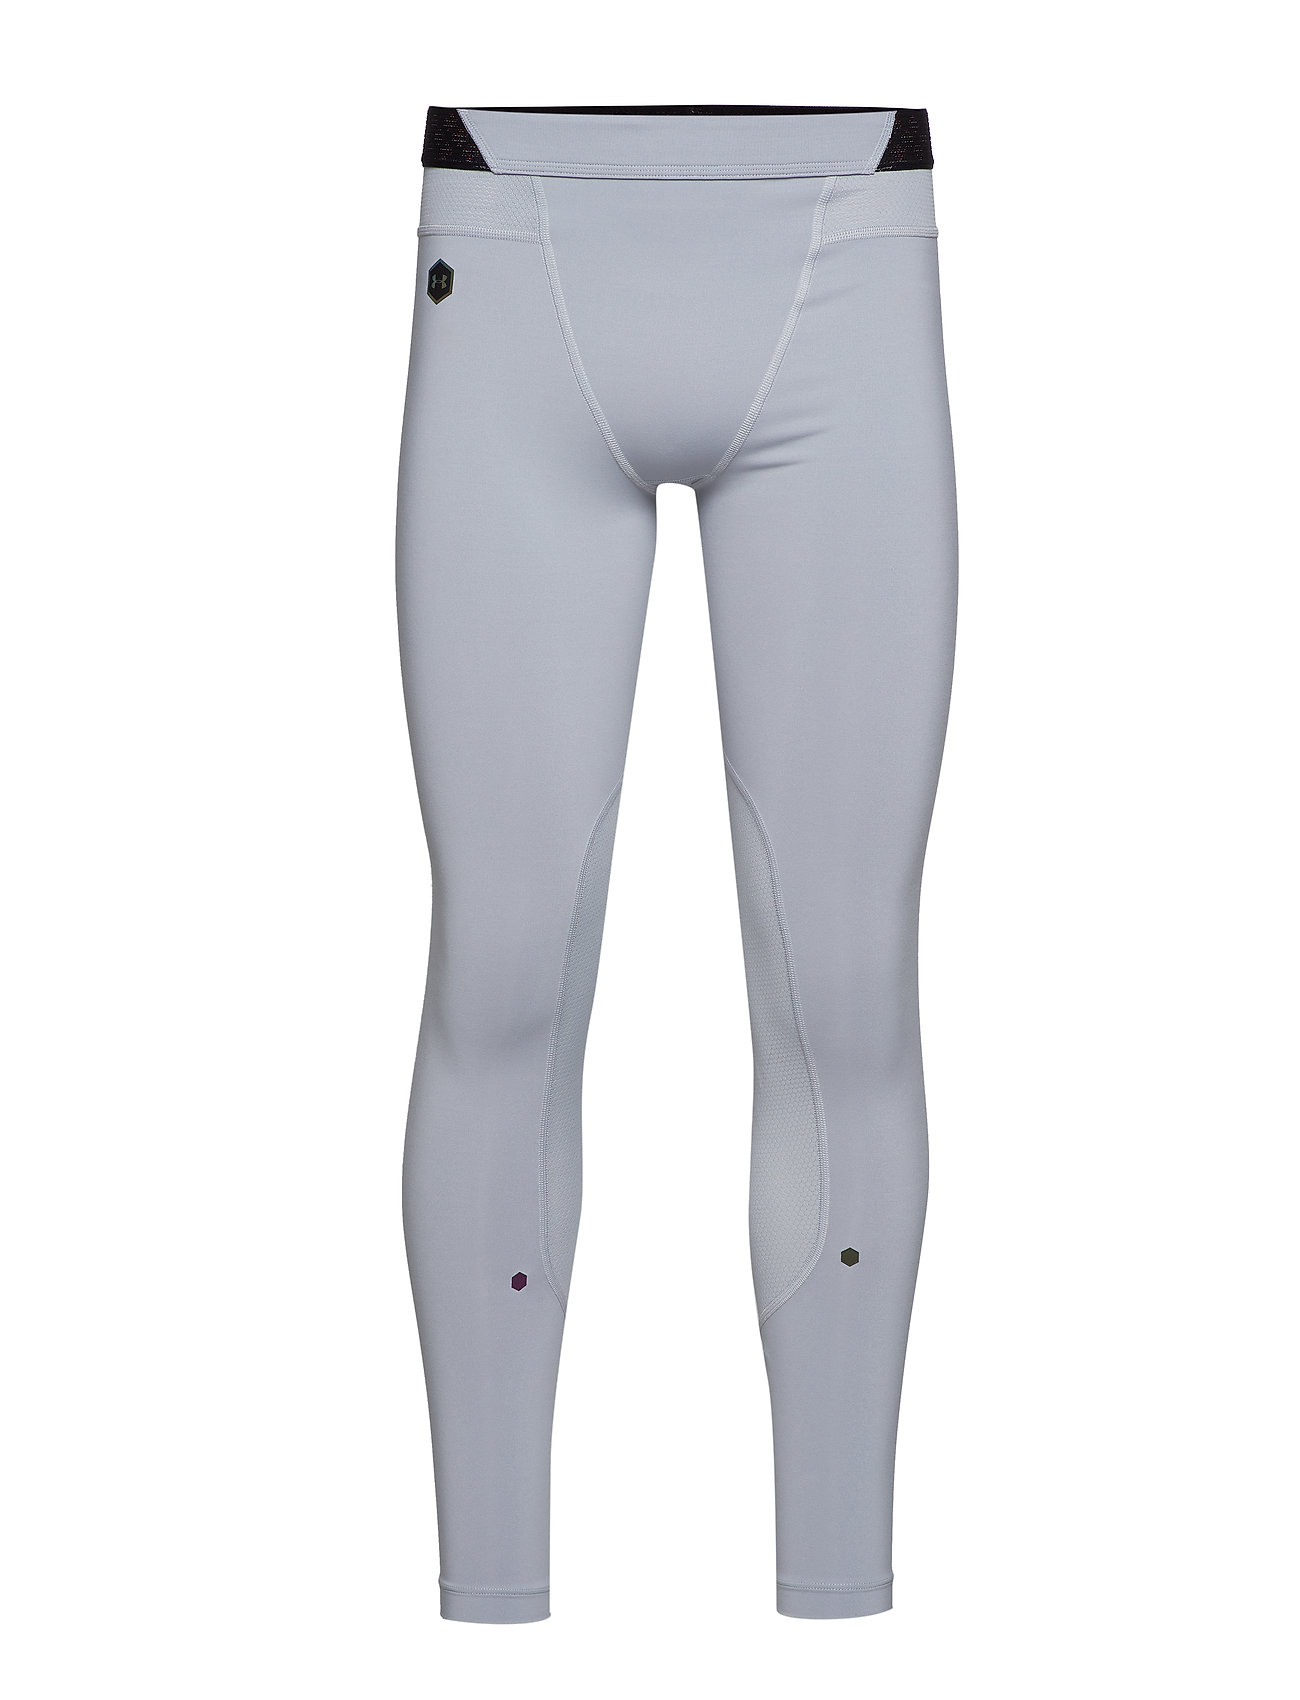 4af68bb3 Ua Hg Rush Leggings (Black) (389.40 kr) - Under Armour - | Boozt.com